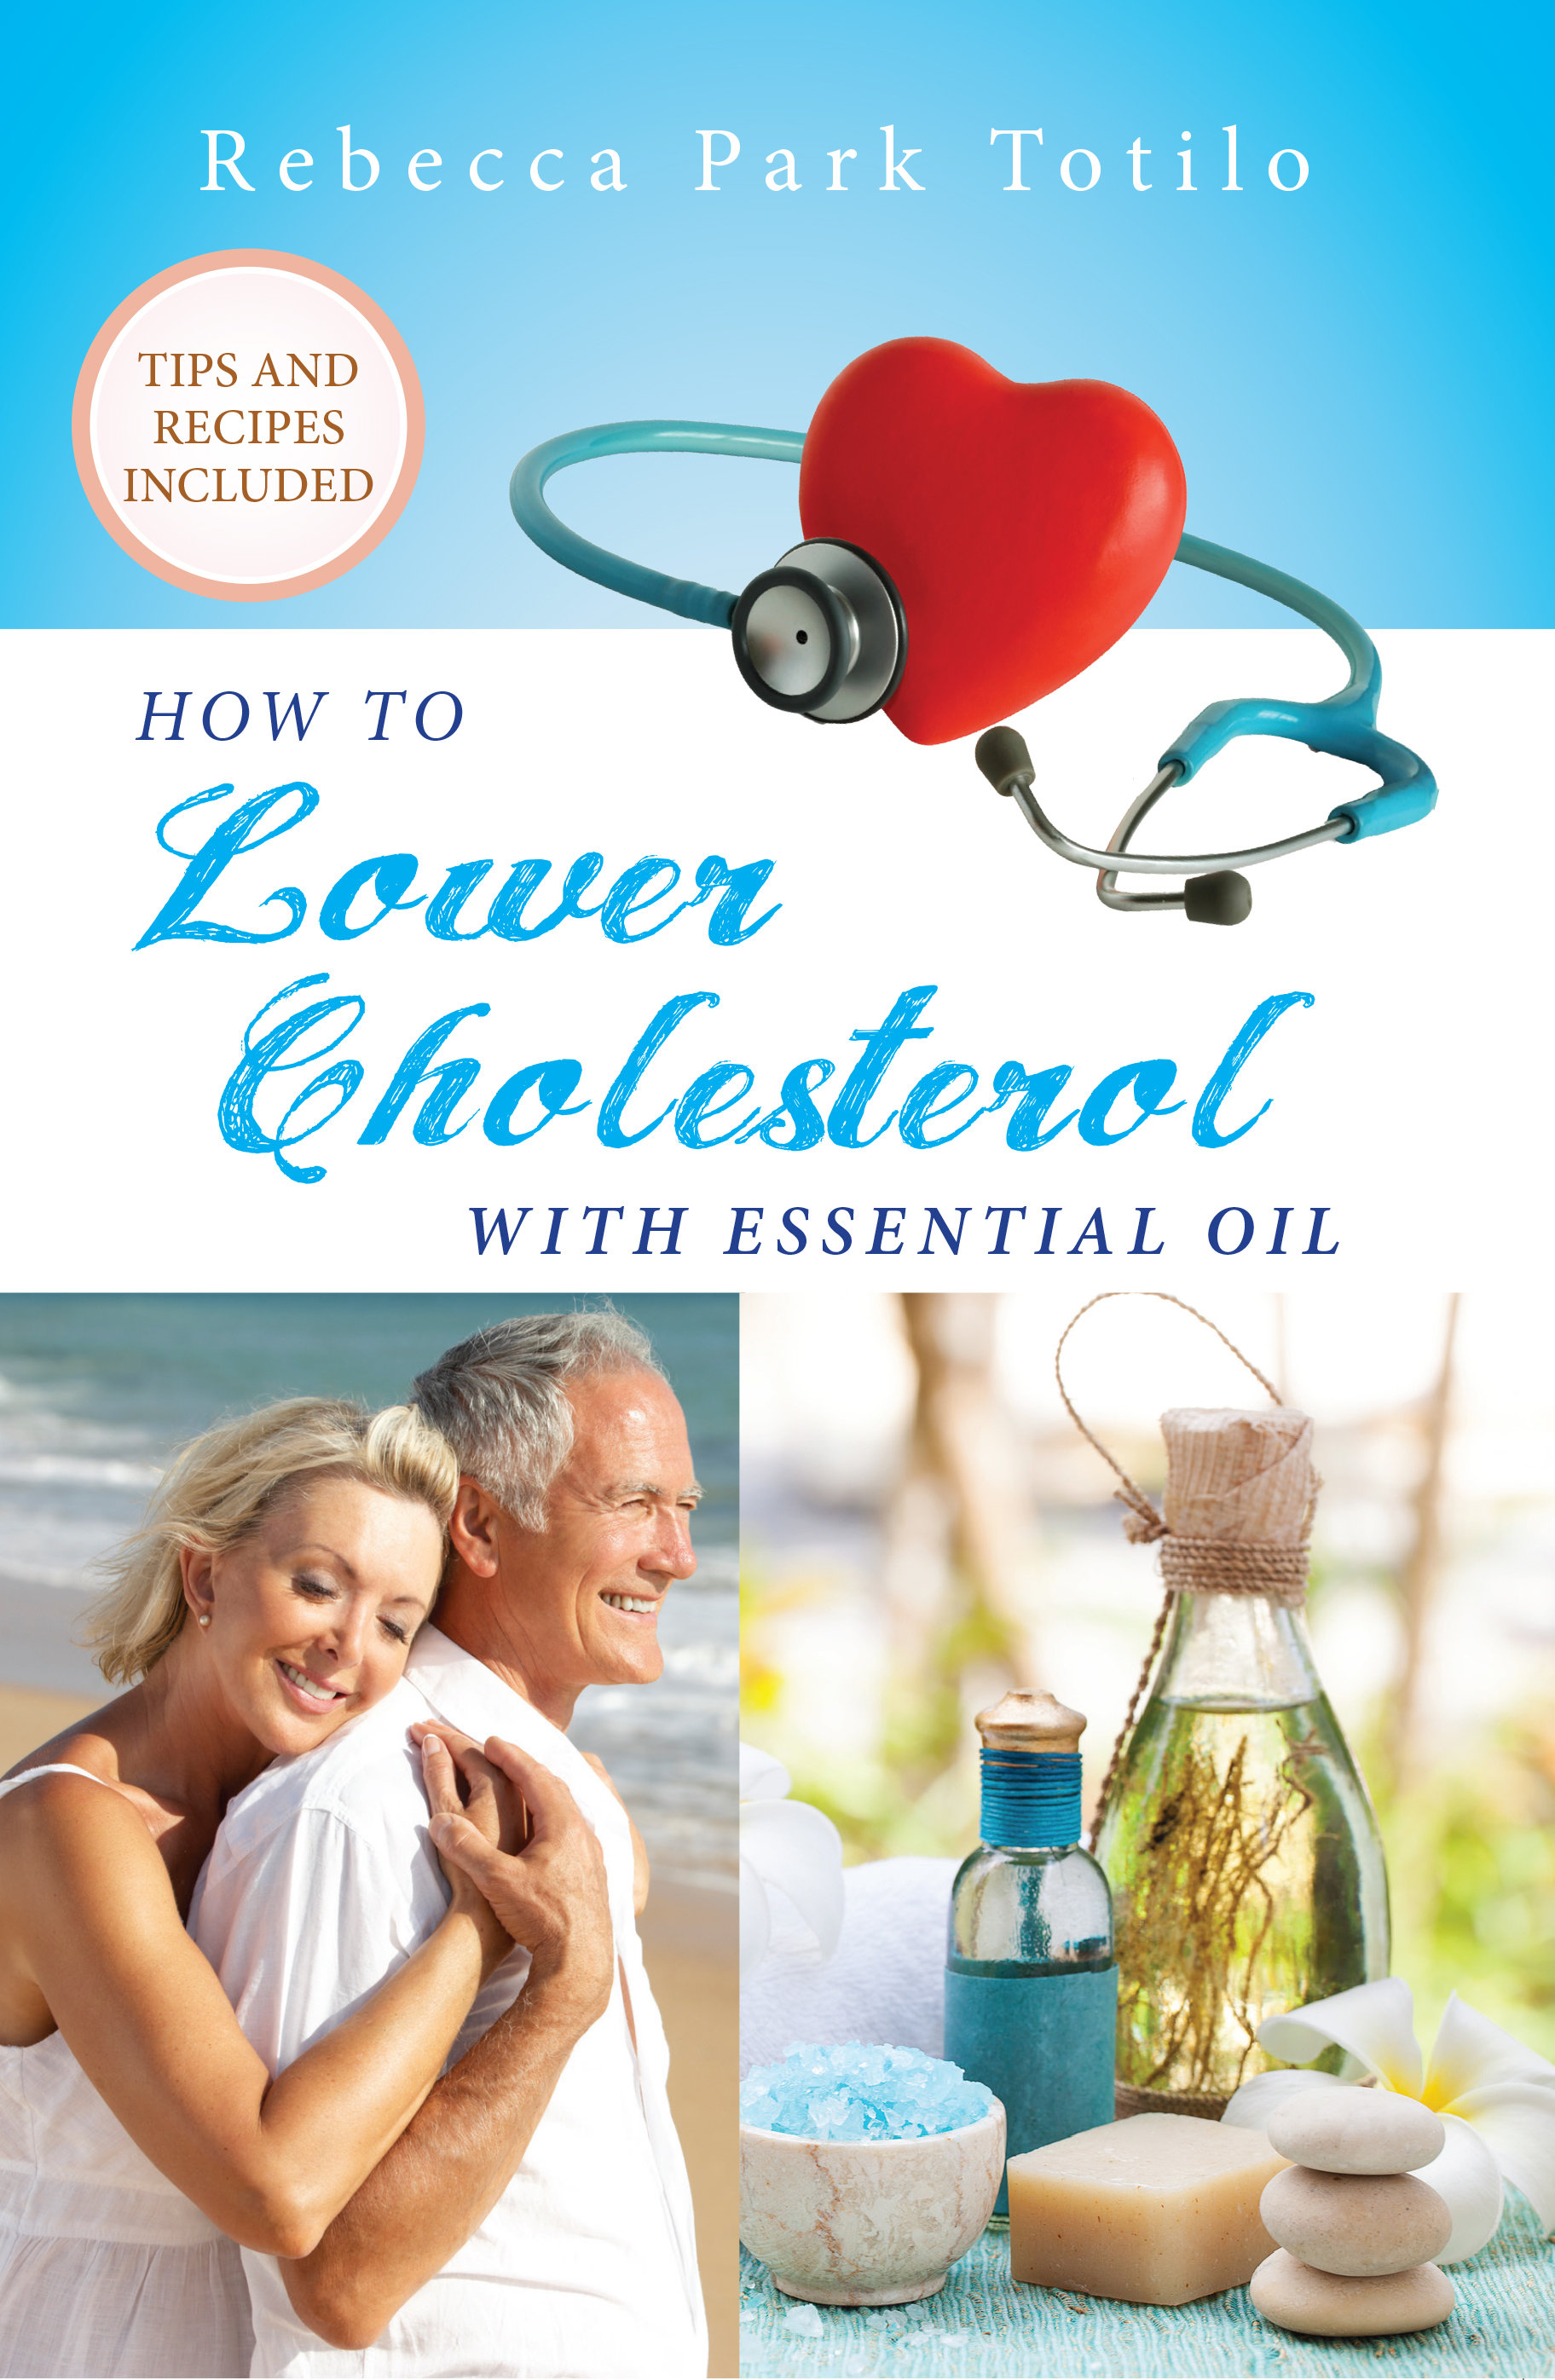 How To Lower Cholesterol With Essential Oil BK-LCWEO